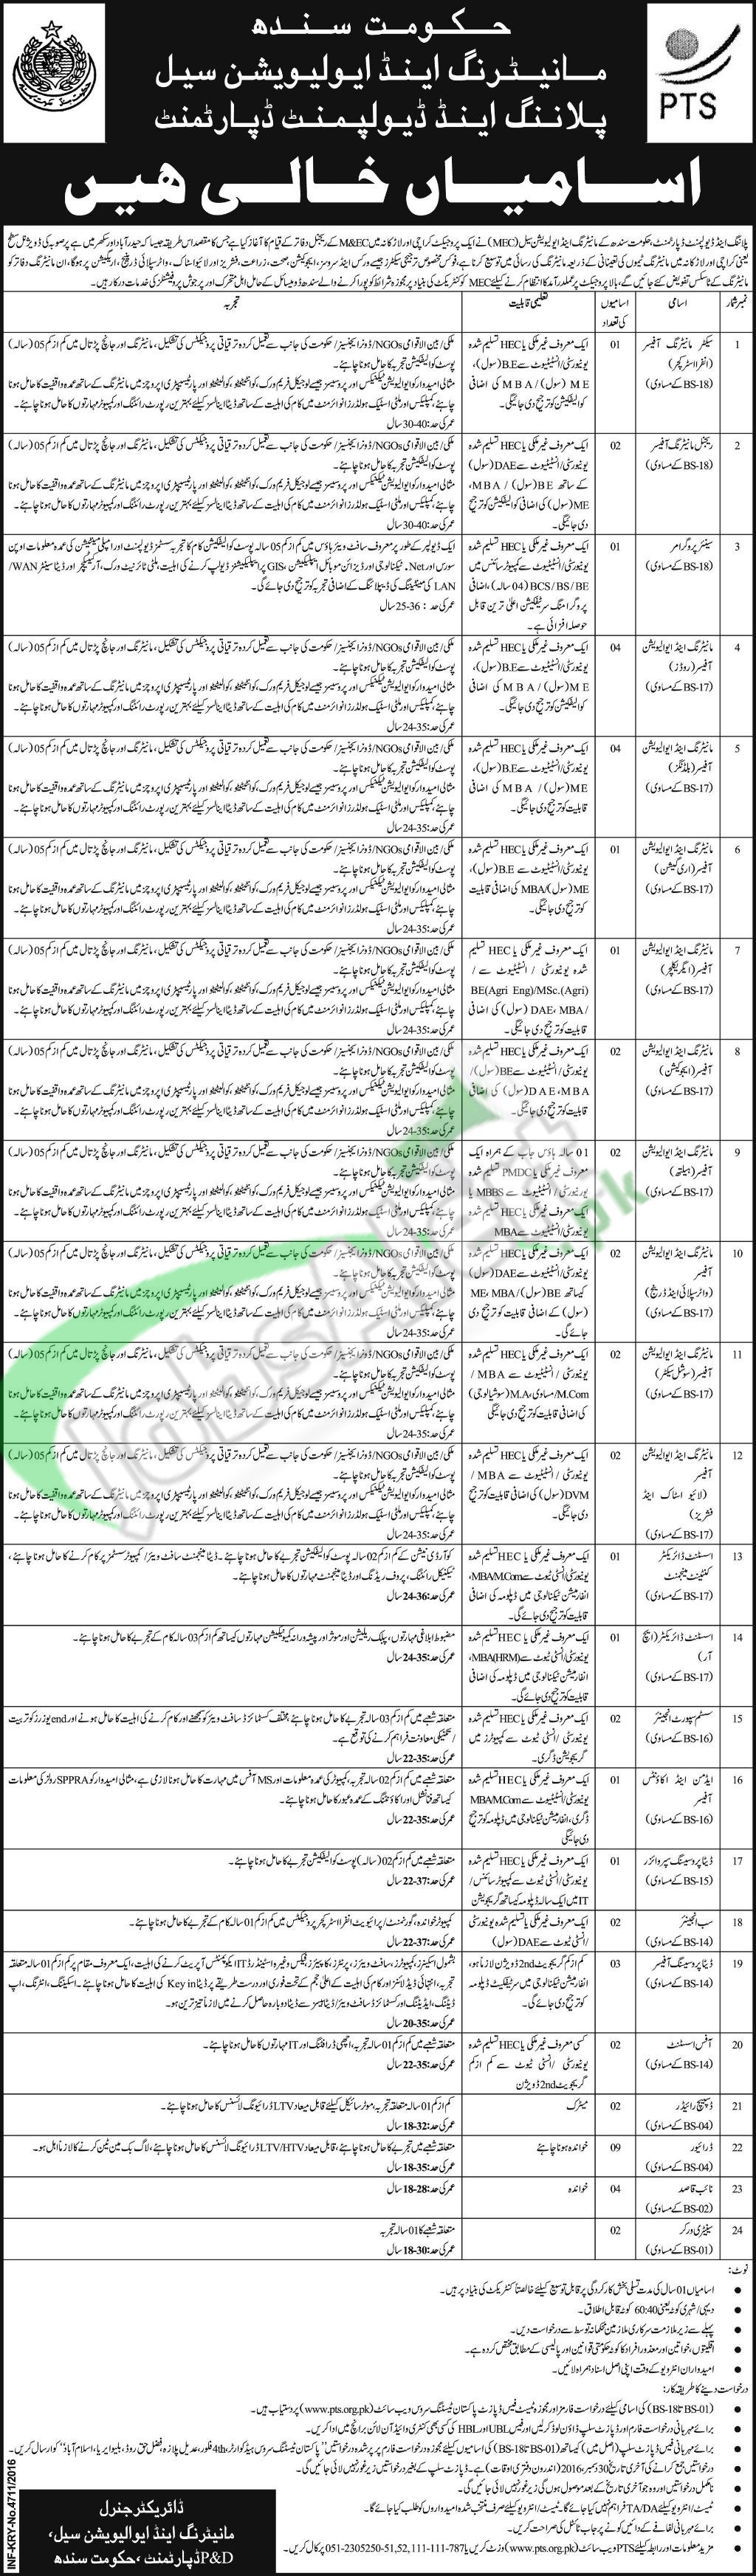 Monitoring & Evaluation Cell Sindh Jobs